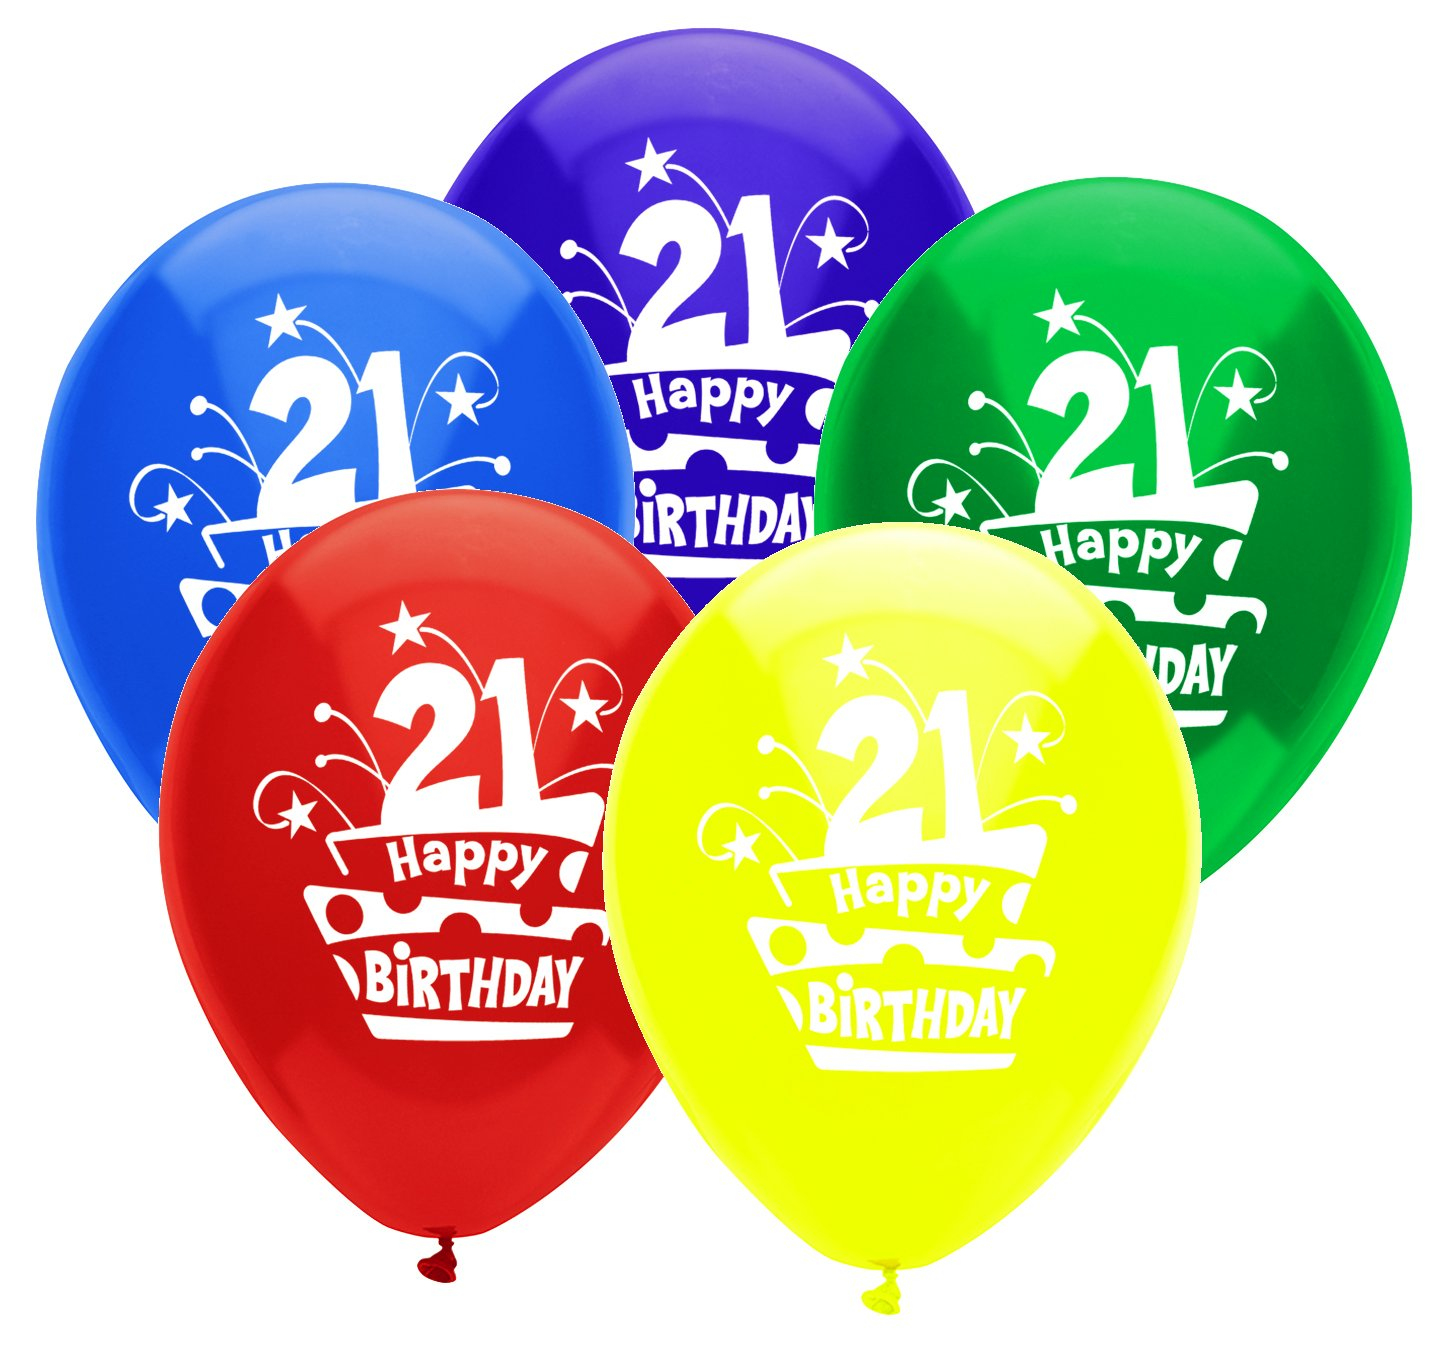 PartyMate 12 Round Printed Latex Balloons Over The Hill Pitch Black 42862 6-Count